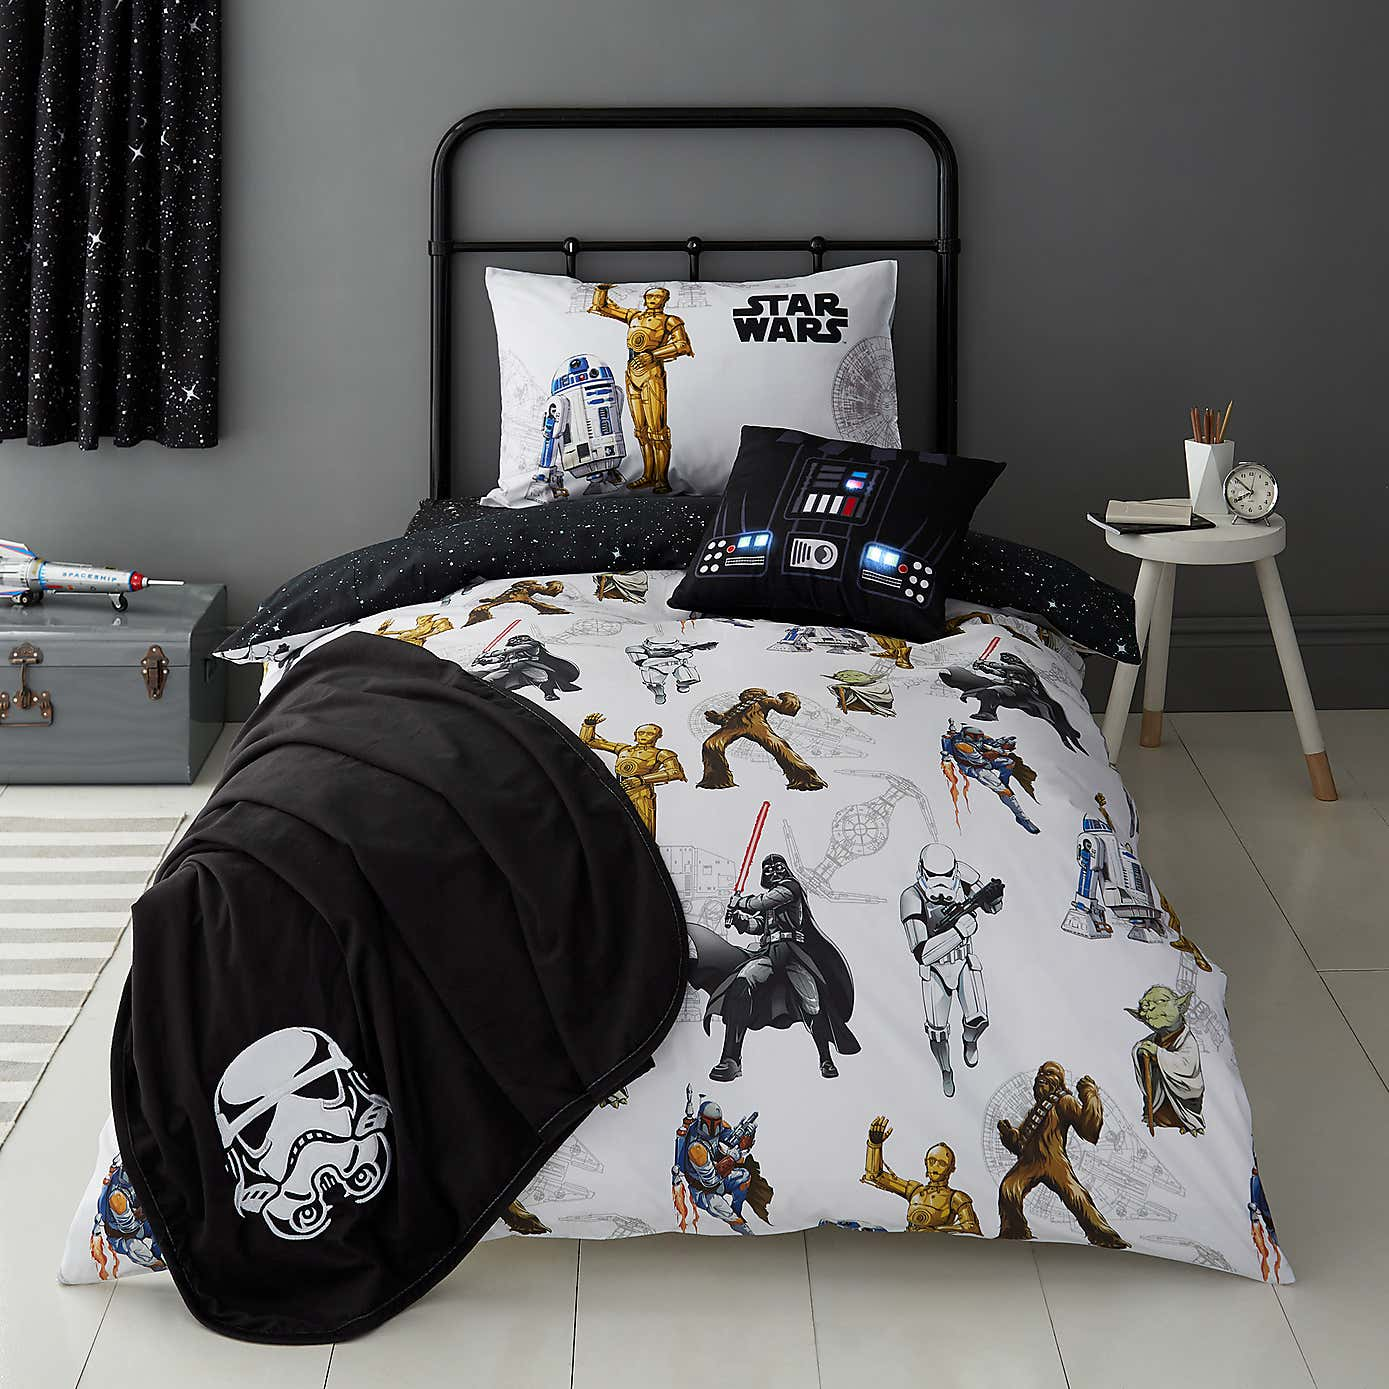 Disney Star Wars Glow In The Dark Duvet Cover And Pillowcase Set - Dunelm